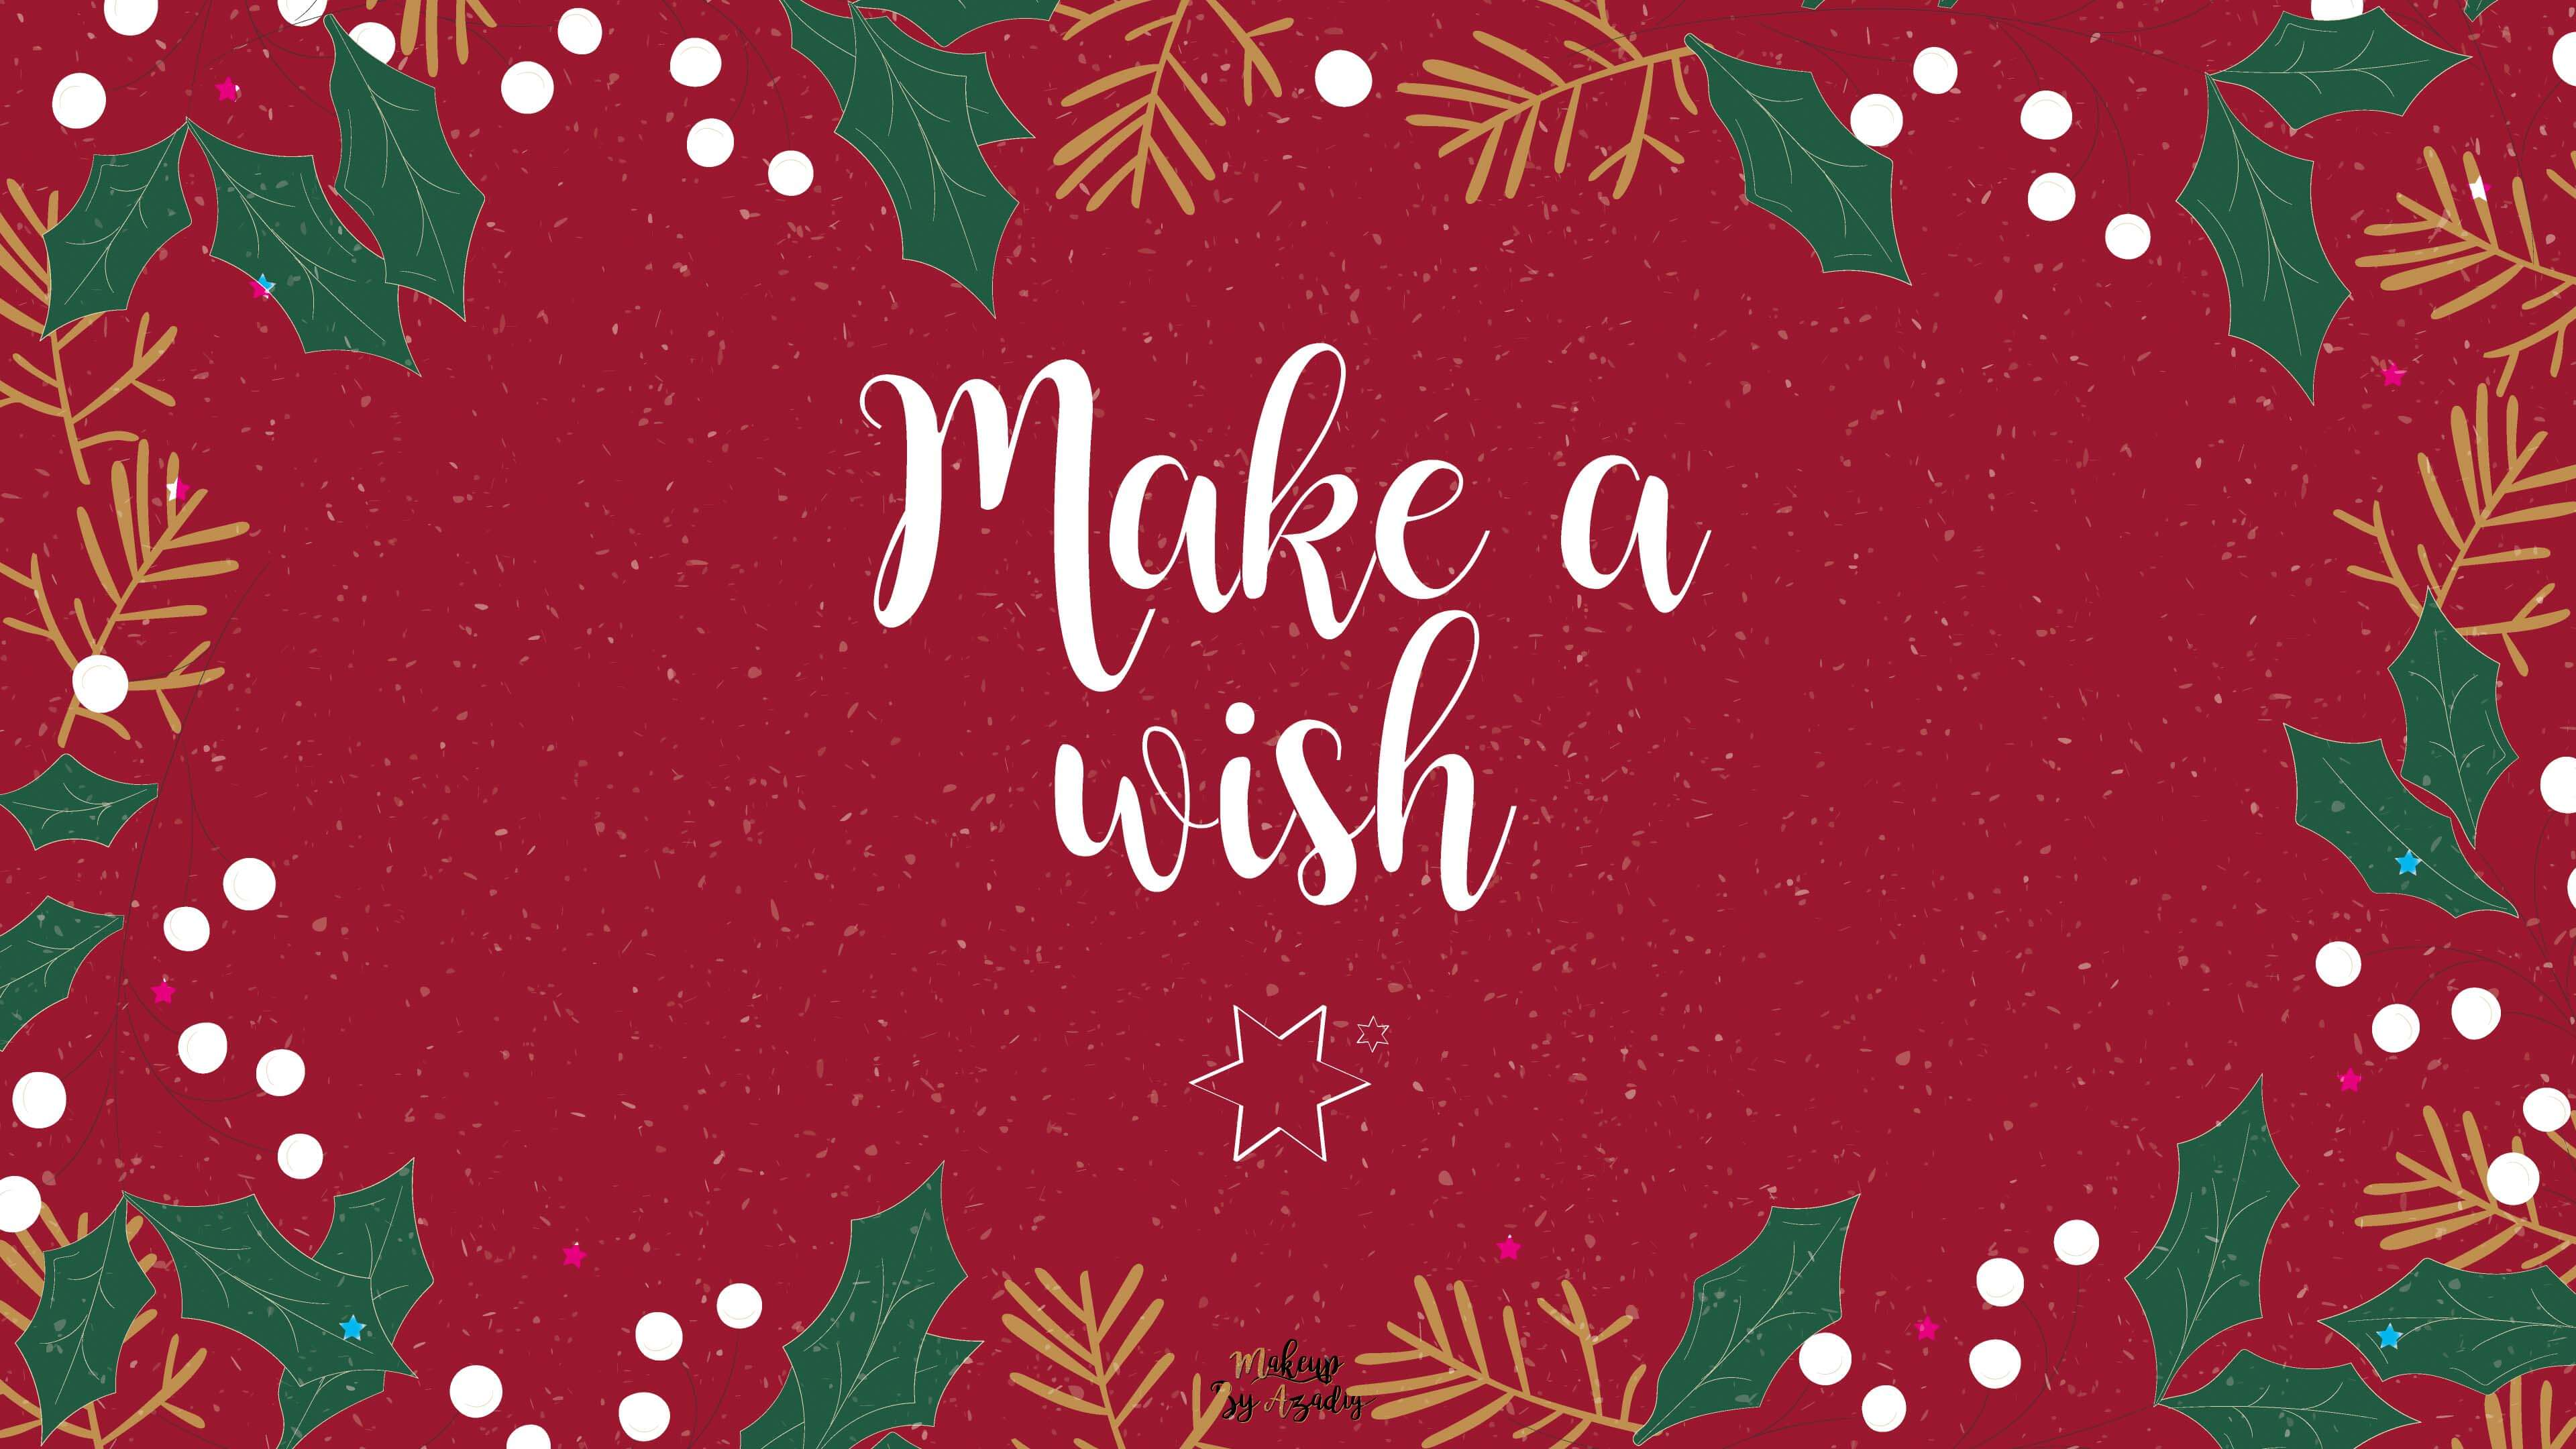 fond-decran-wallpaper-christmas-noel-make-a-wish-ordinateur-mac-macbook-imac-pc-makeupbyazadig-tendance